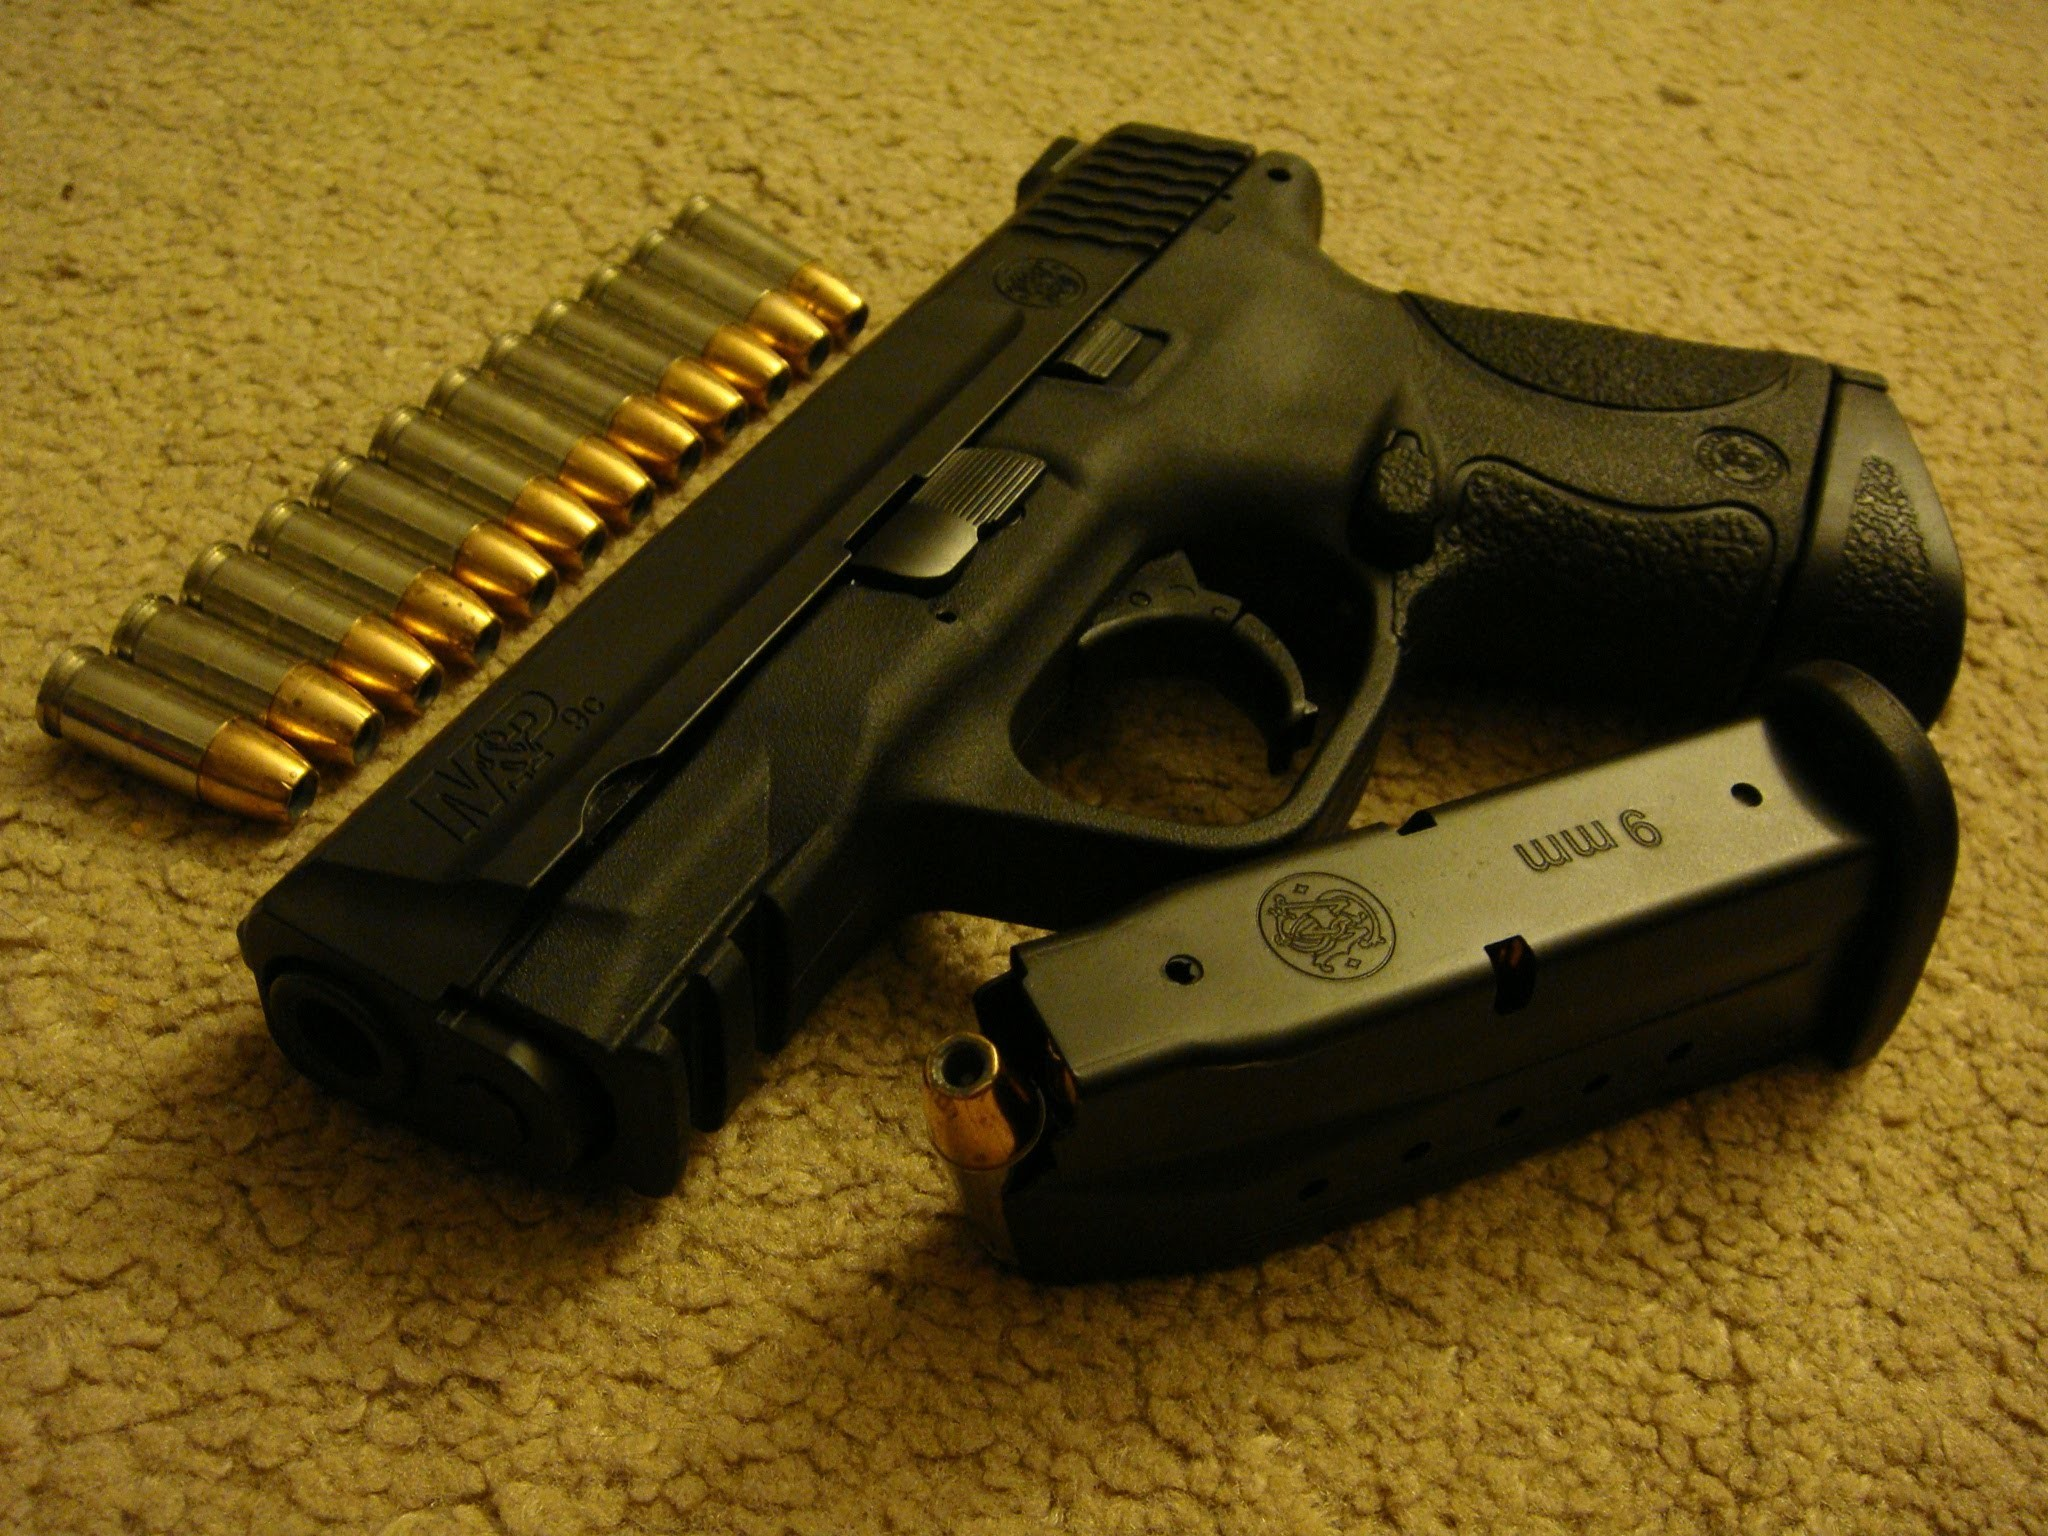 Smith & Wesson M&P 9c Overview/Review